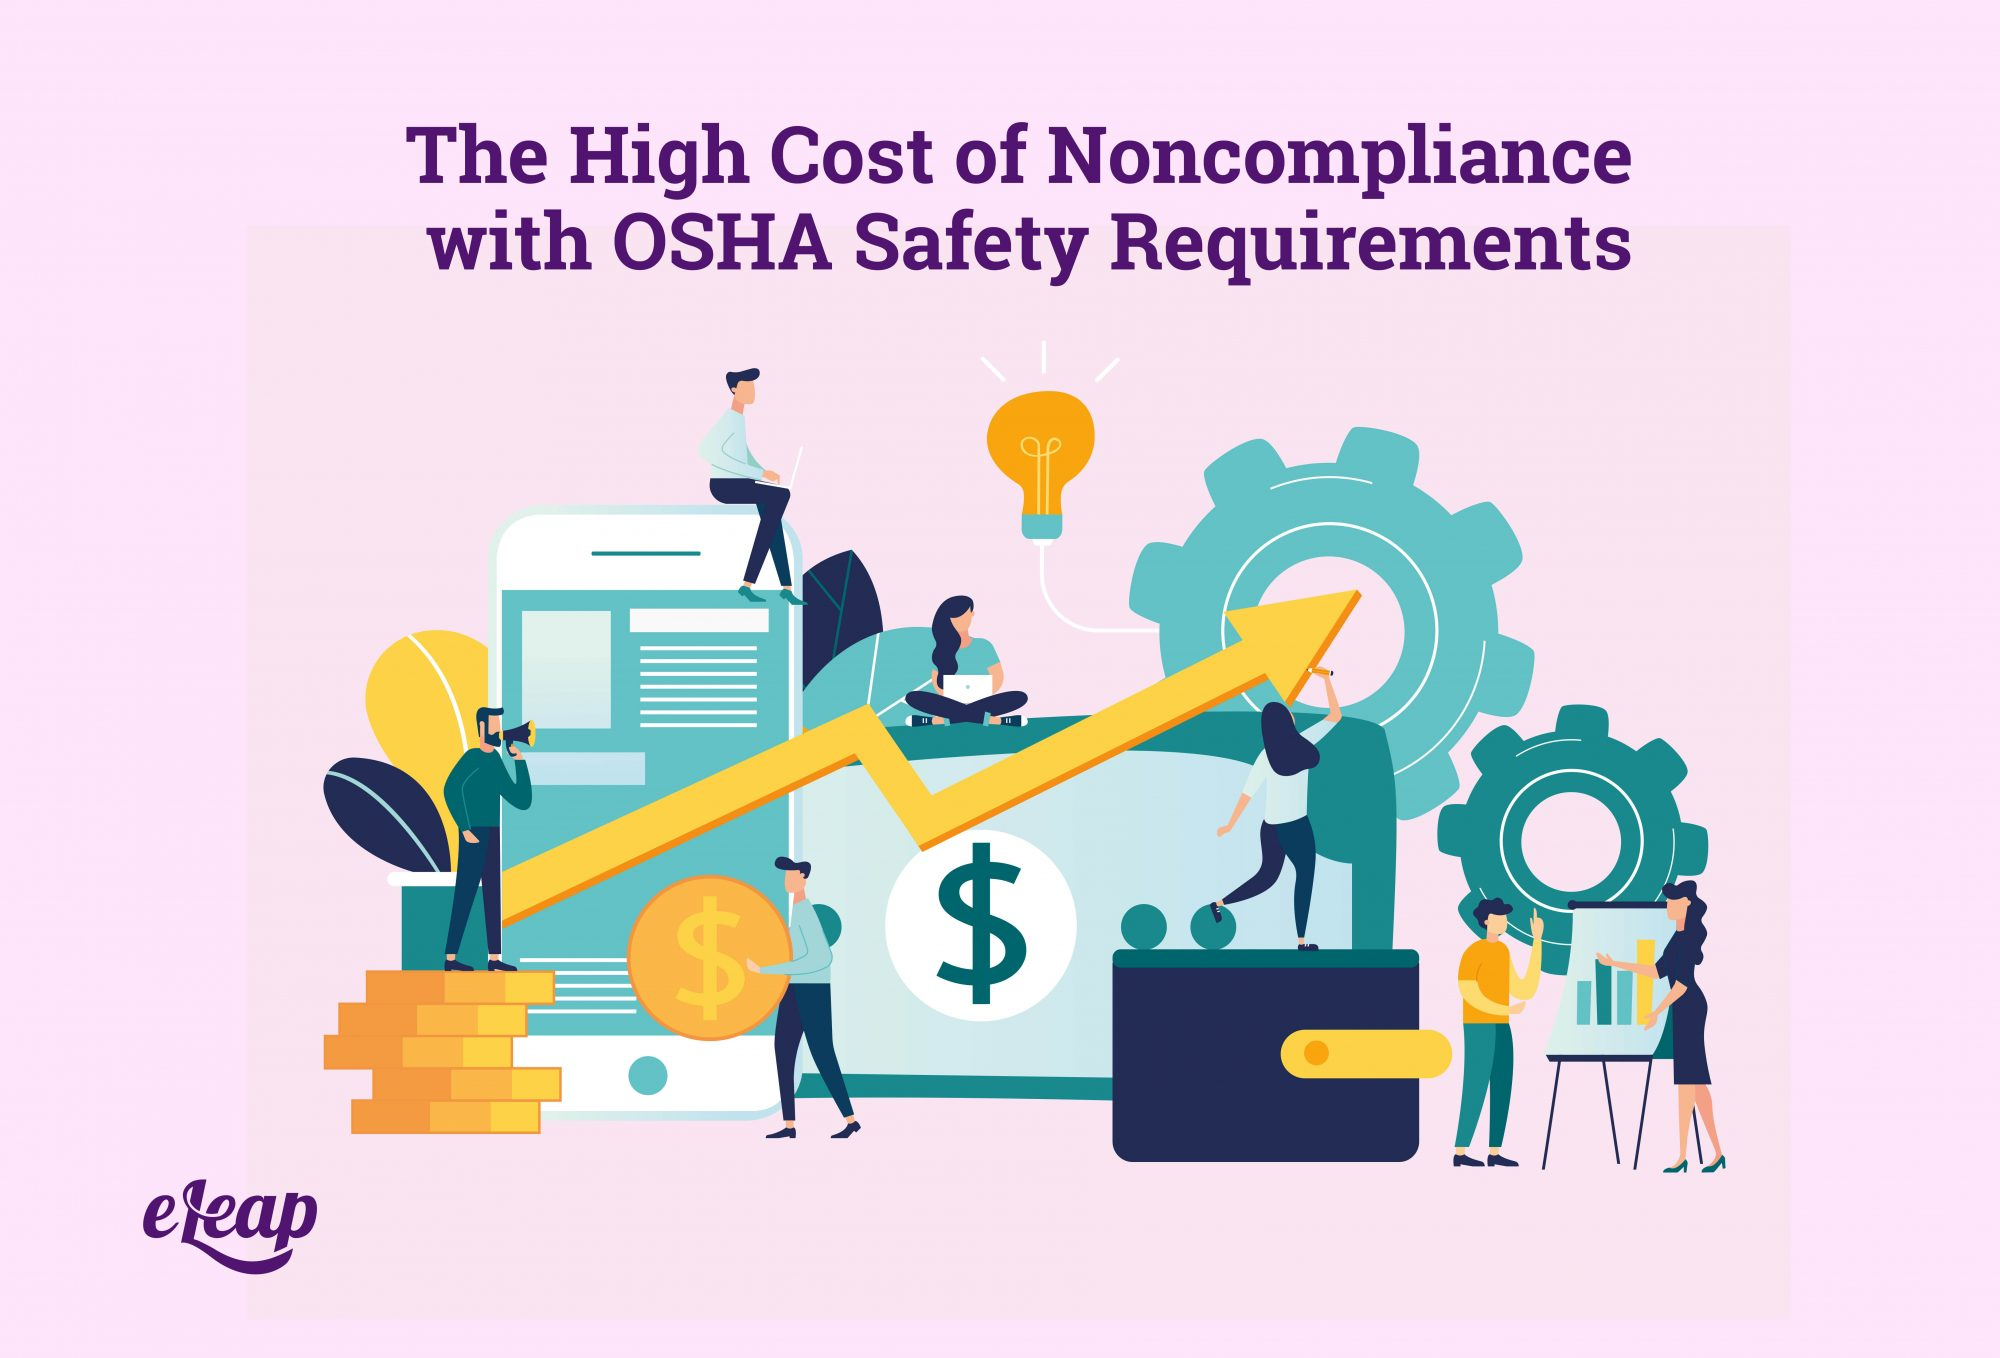 The High Cost of Noncompliance with OSHA Safety Requirements